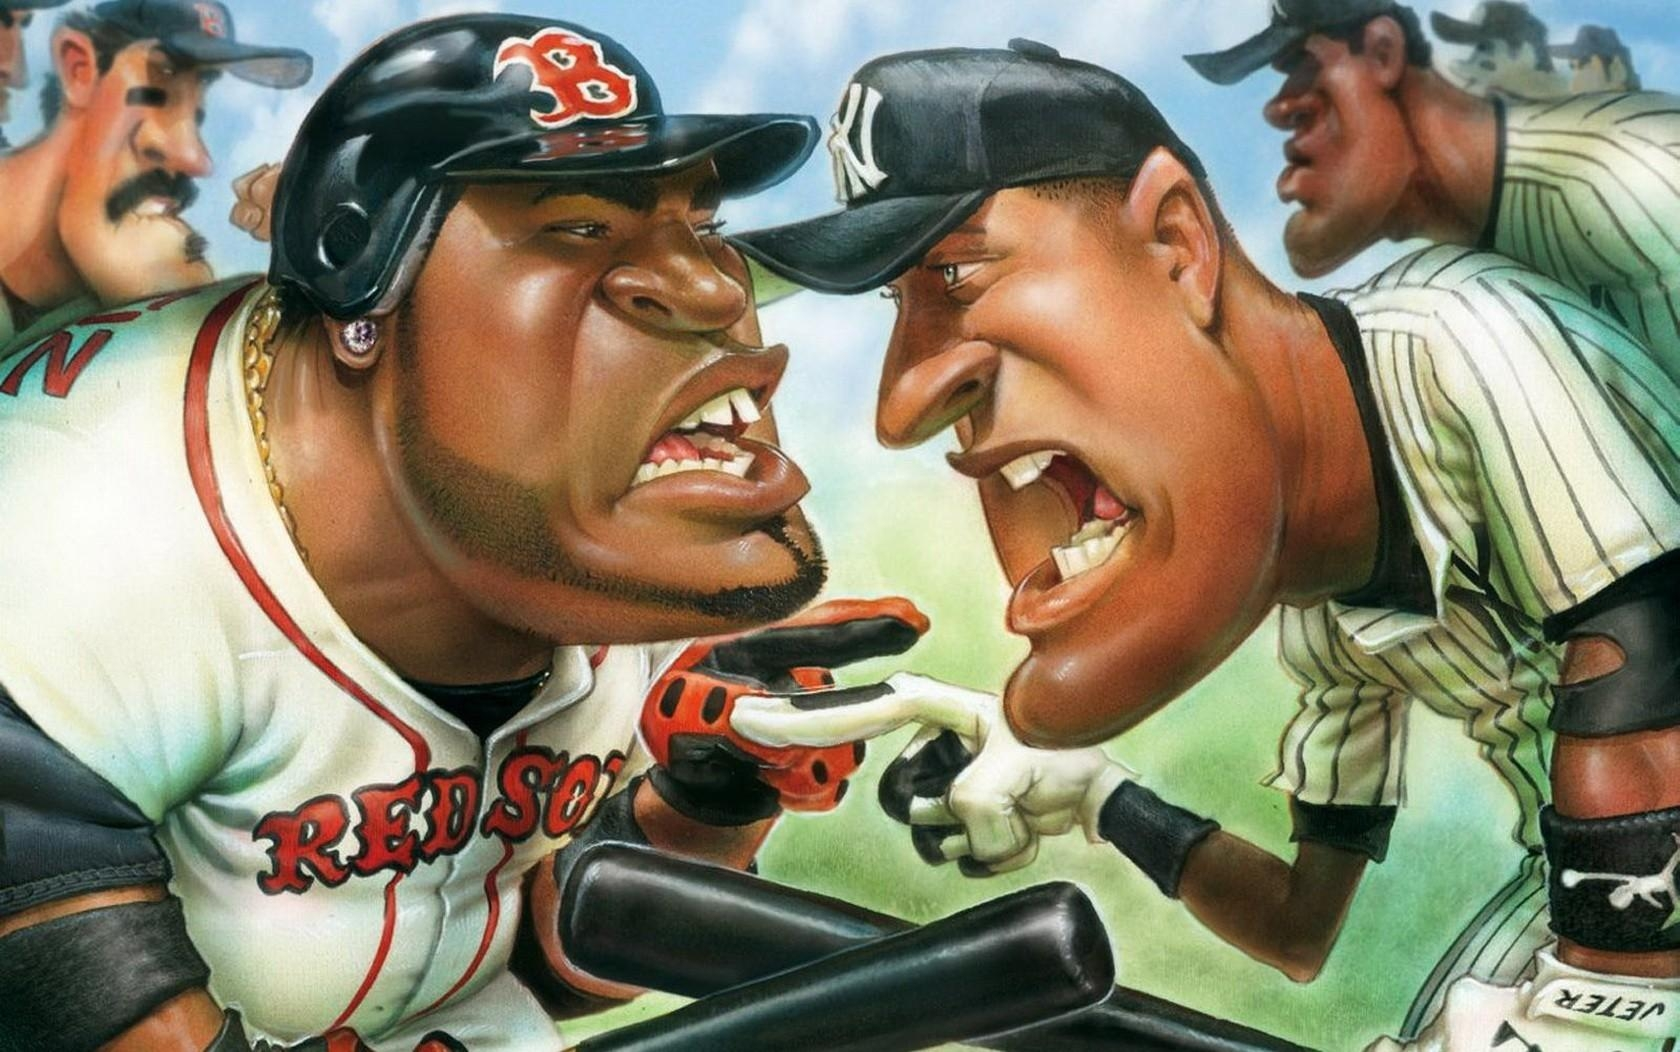 New York Yankees And Boston Red Sox Wallpaper With Boston Red Sox Wall Art (Image 14 of 20)